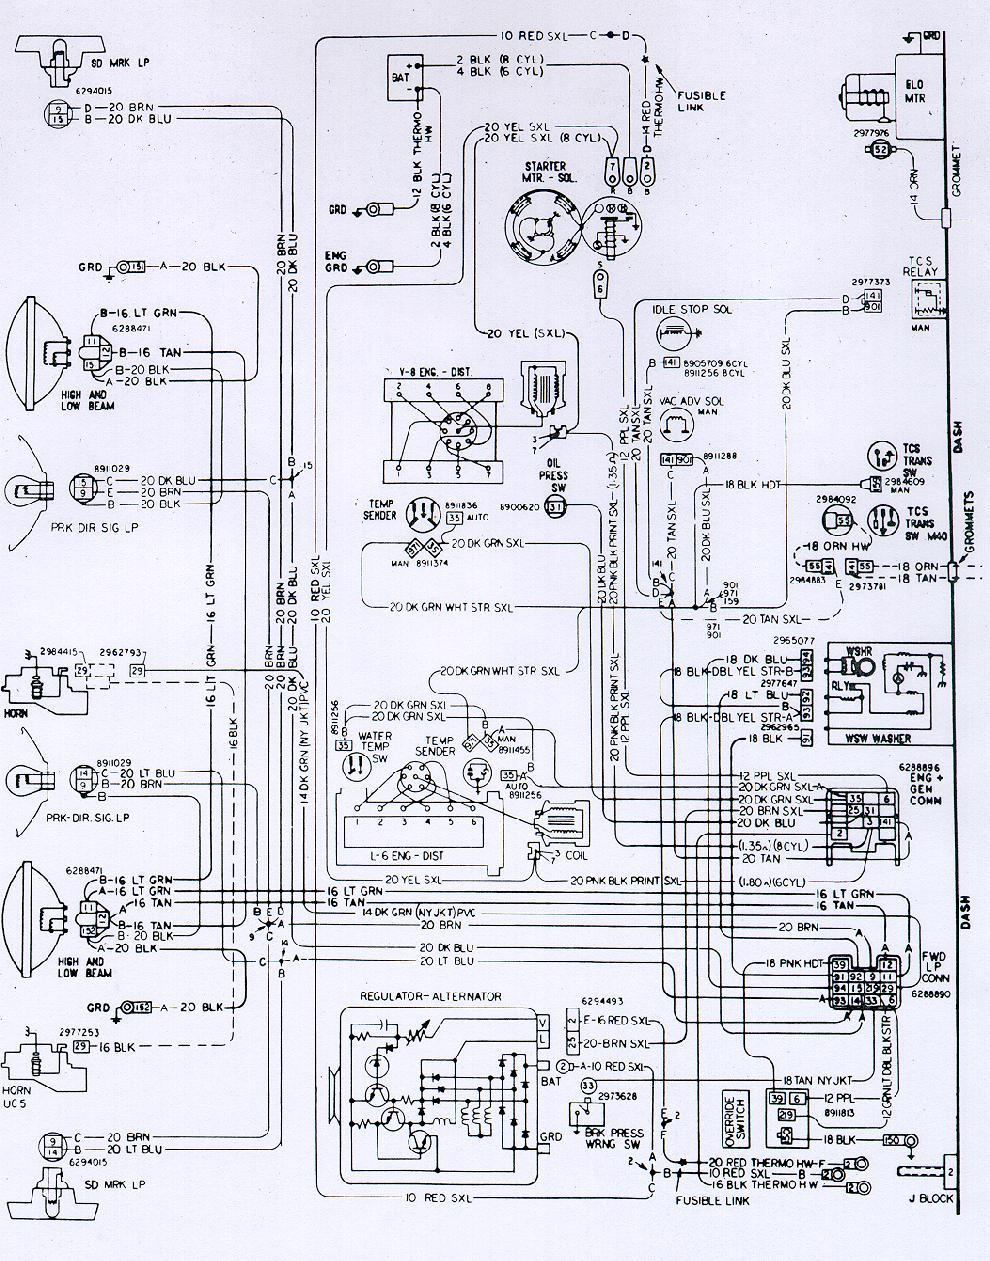 hight resolution of 1972 camaro wiring diagram wiring diagrams tar 1972 camaro wiring diagram wiring diagram 1972 camaro instrument